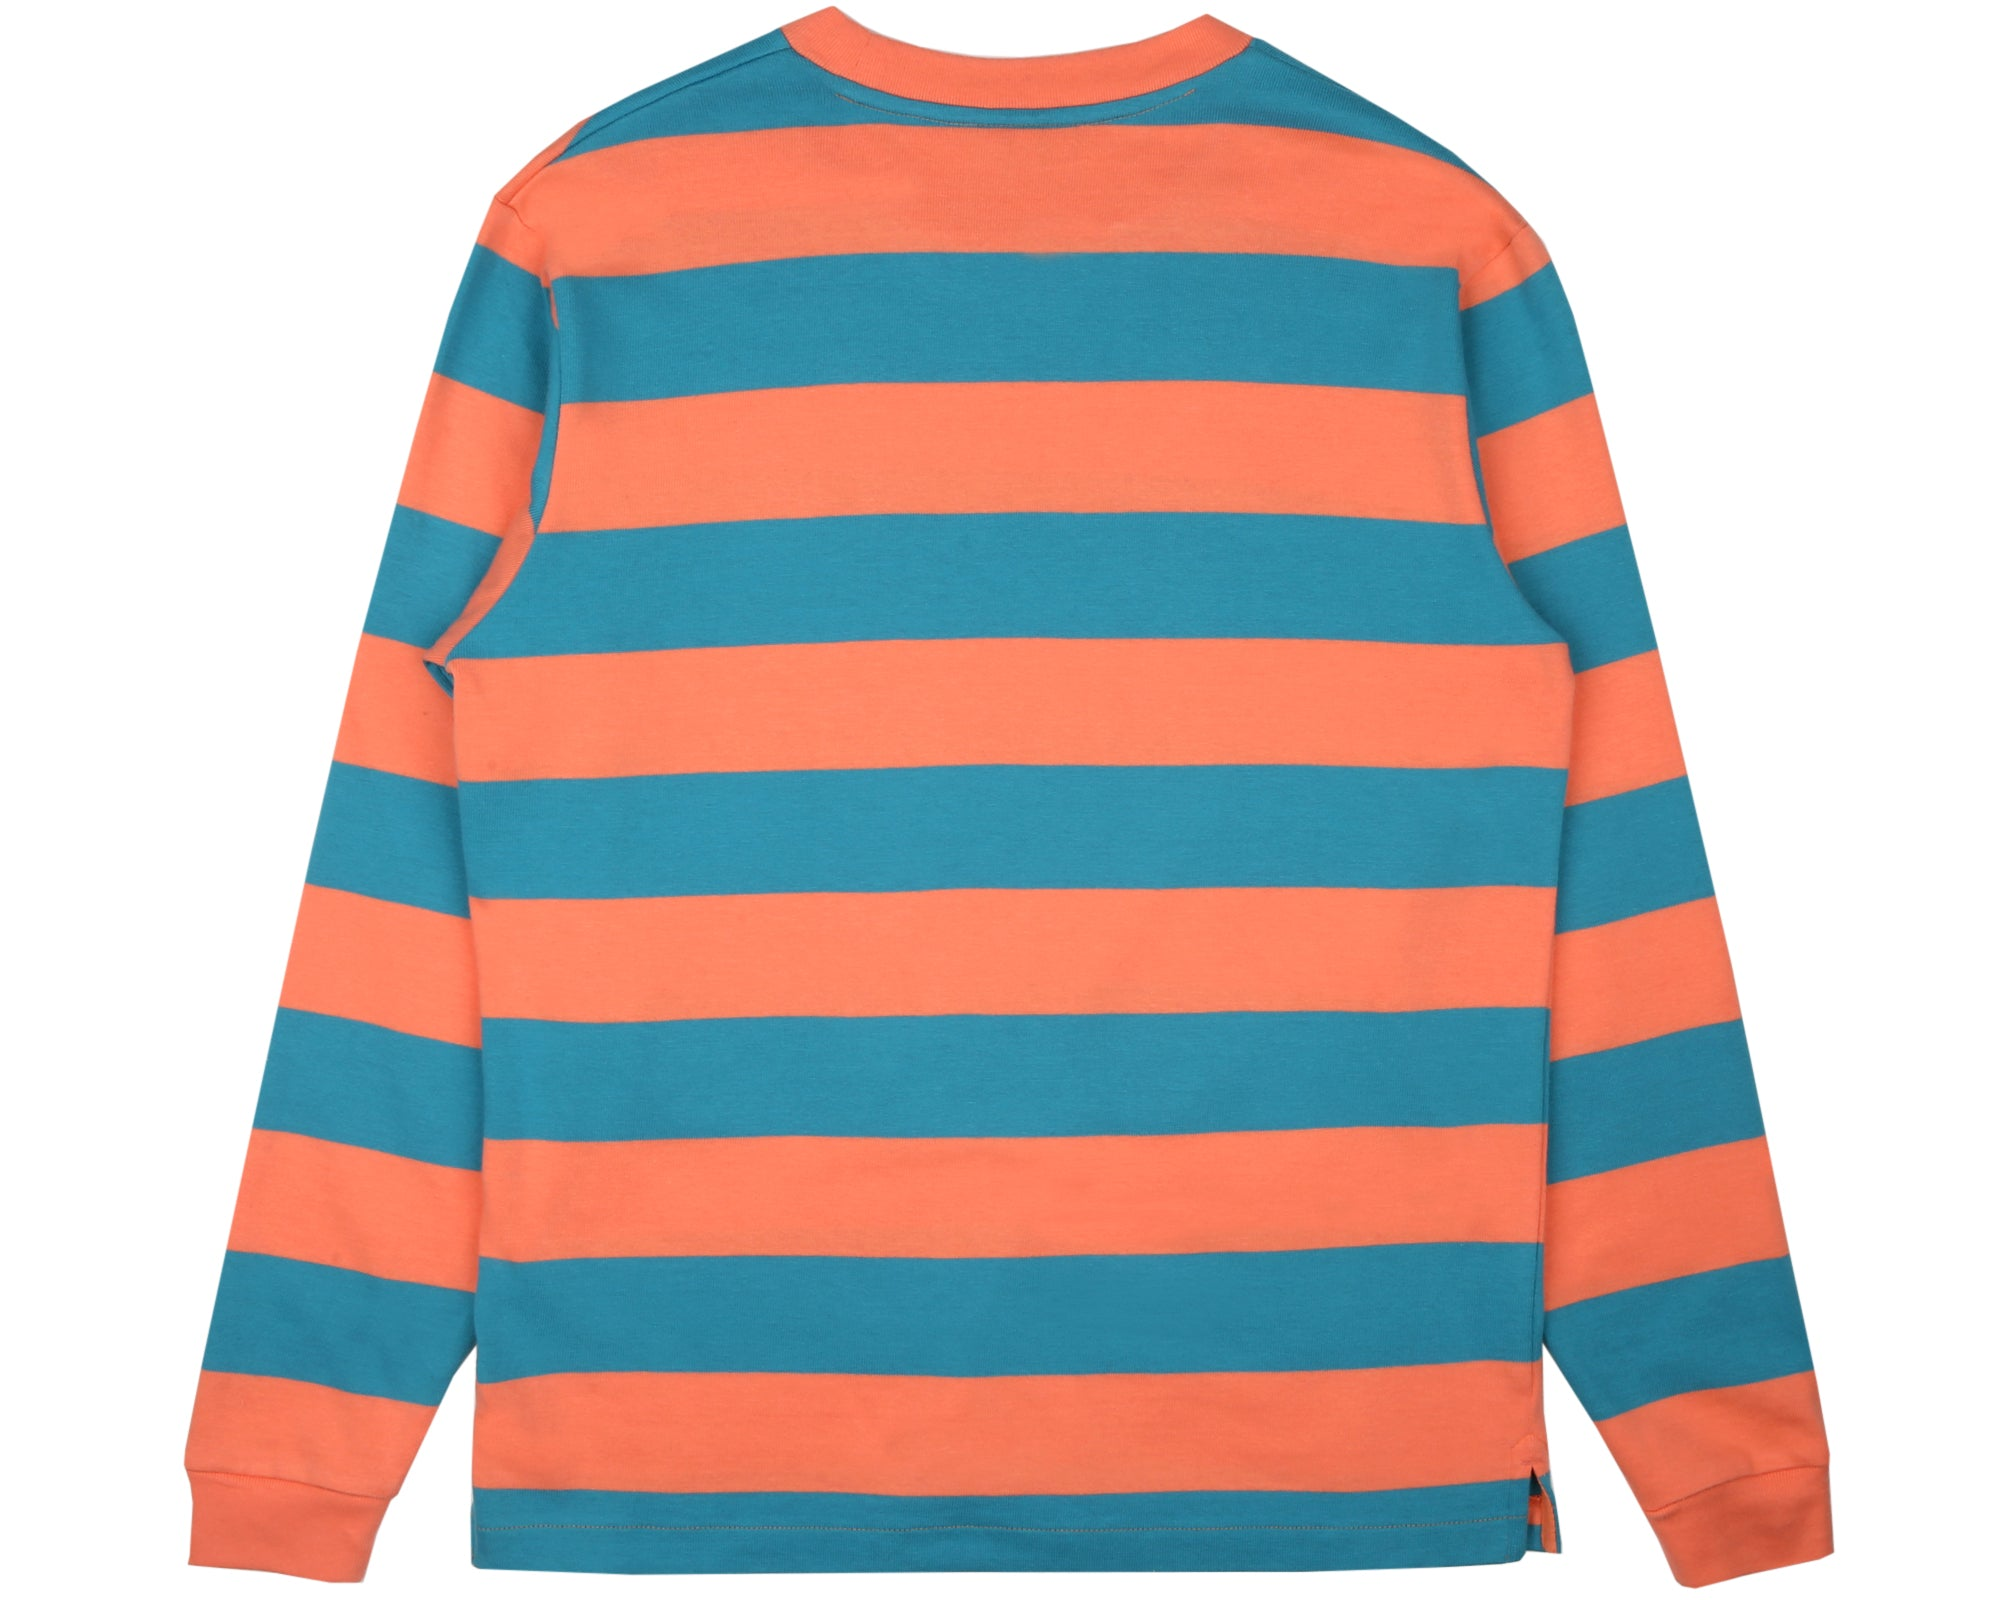 HEAVY STRIPED L/S T-SHIRT - CORAL